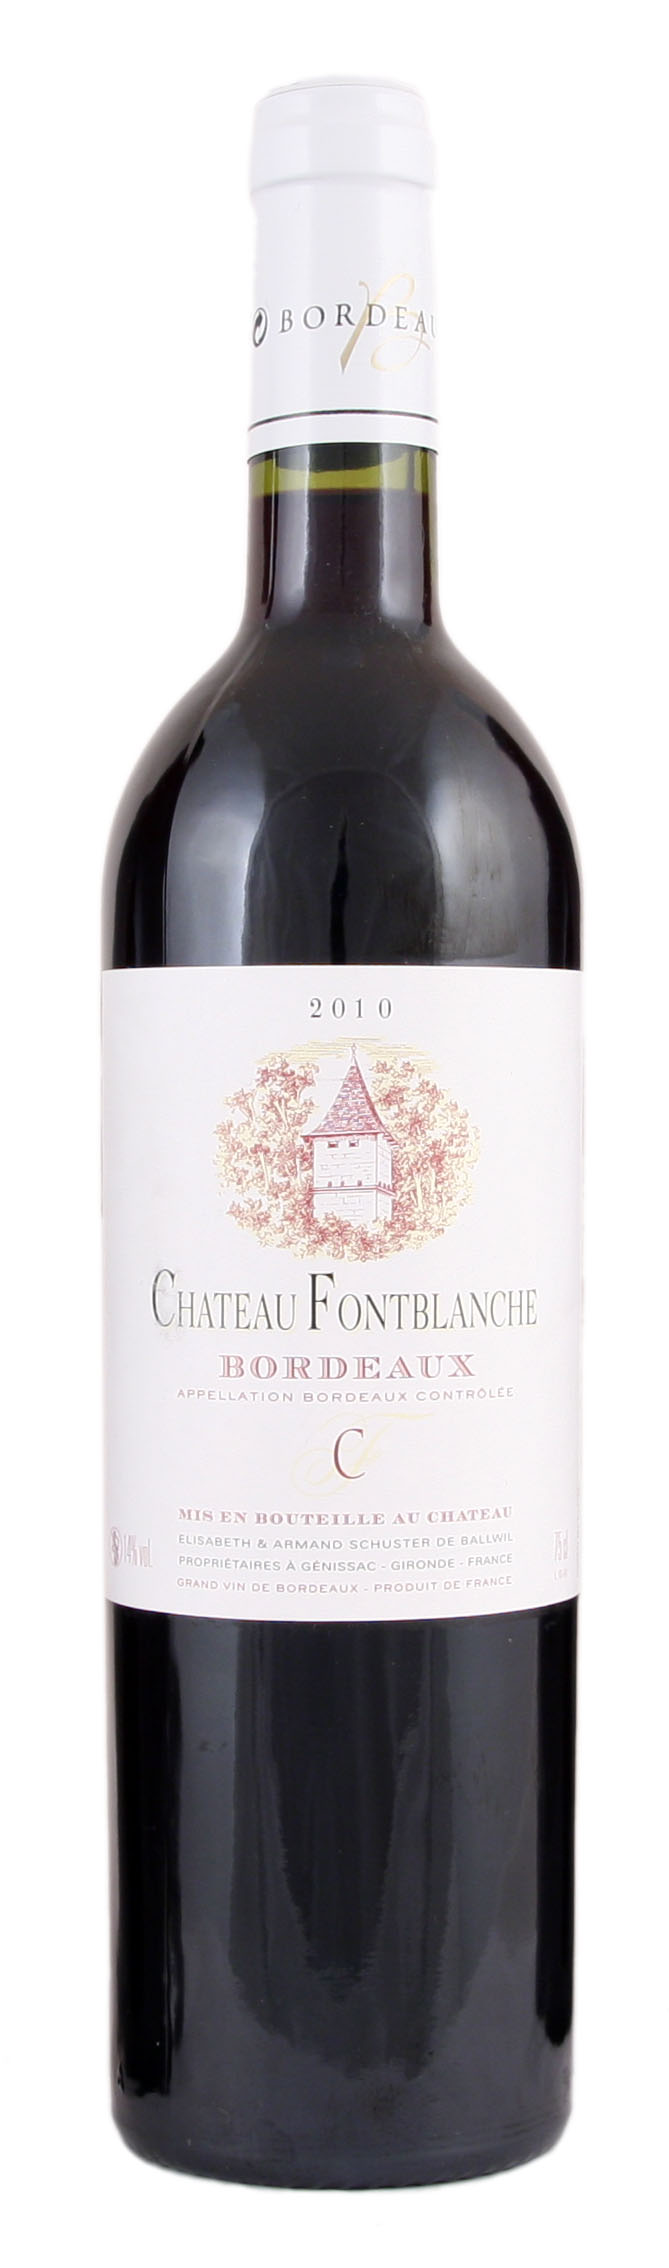 Chateau Fontblanche AOC